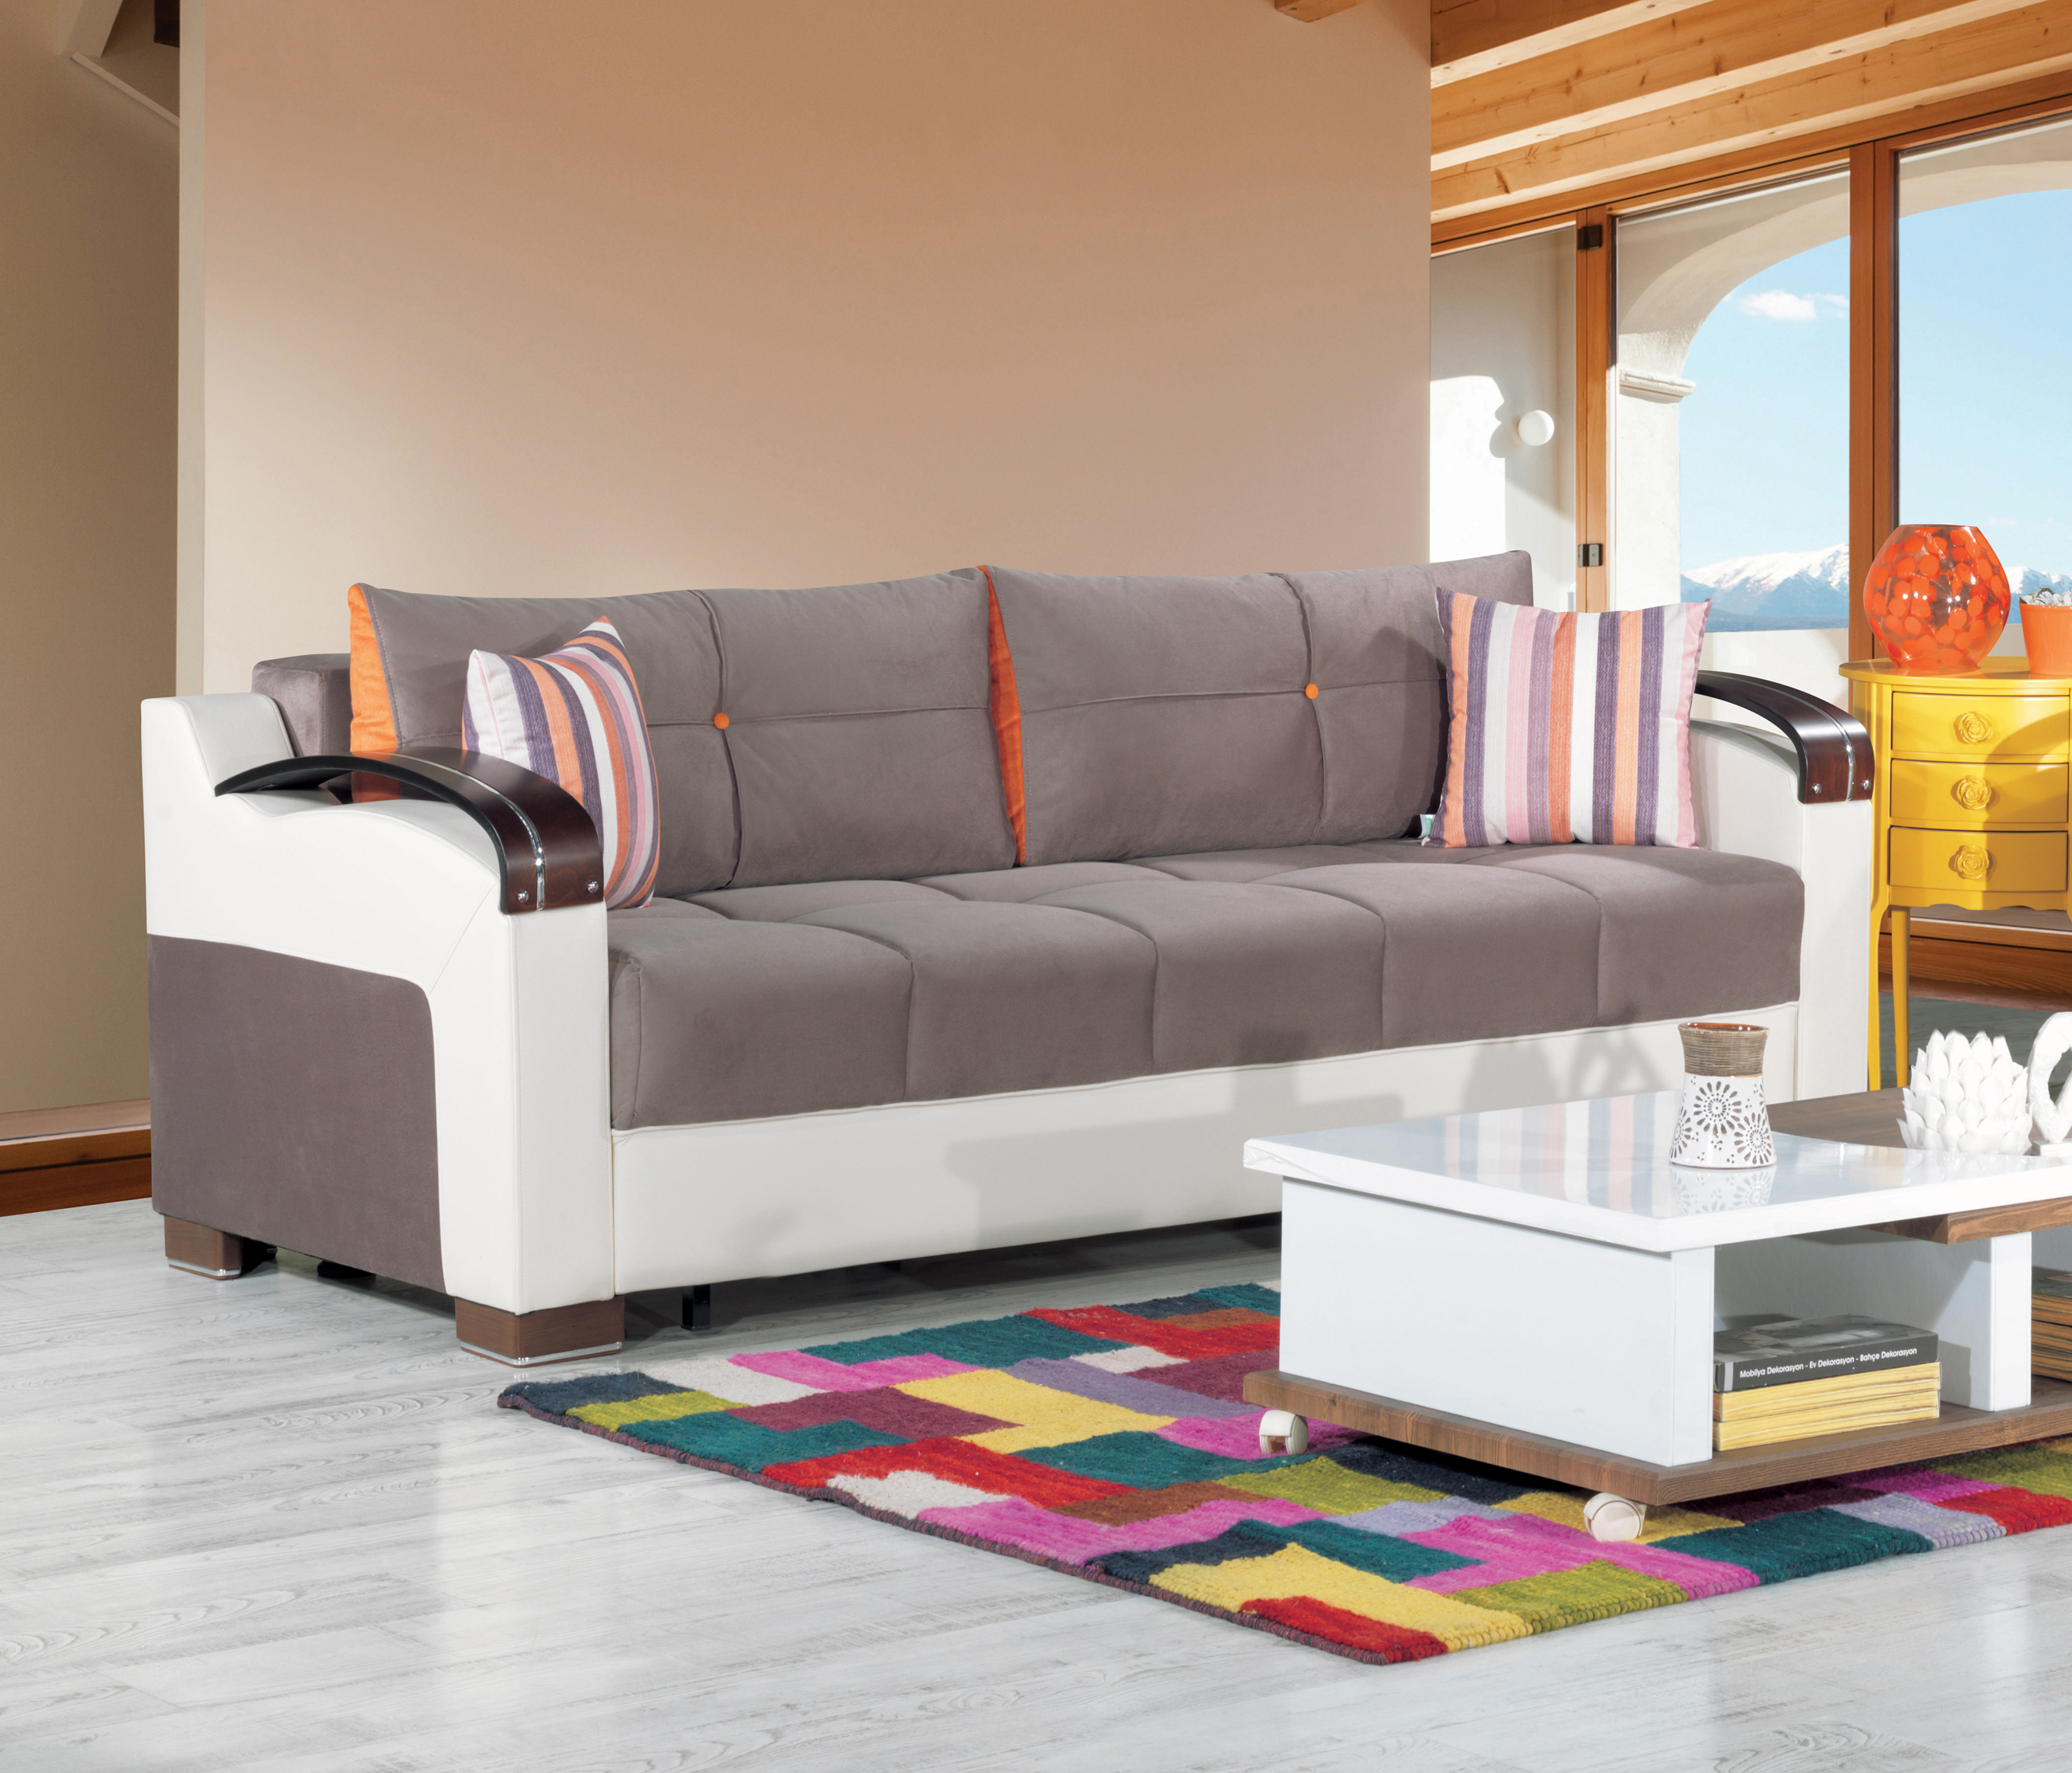 Divan Deluxe Golf Gray Convertible Sofa By Casamode - Divans convertibles